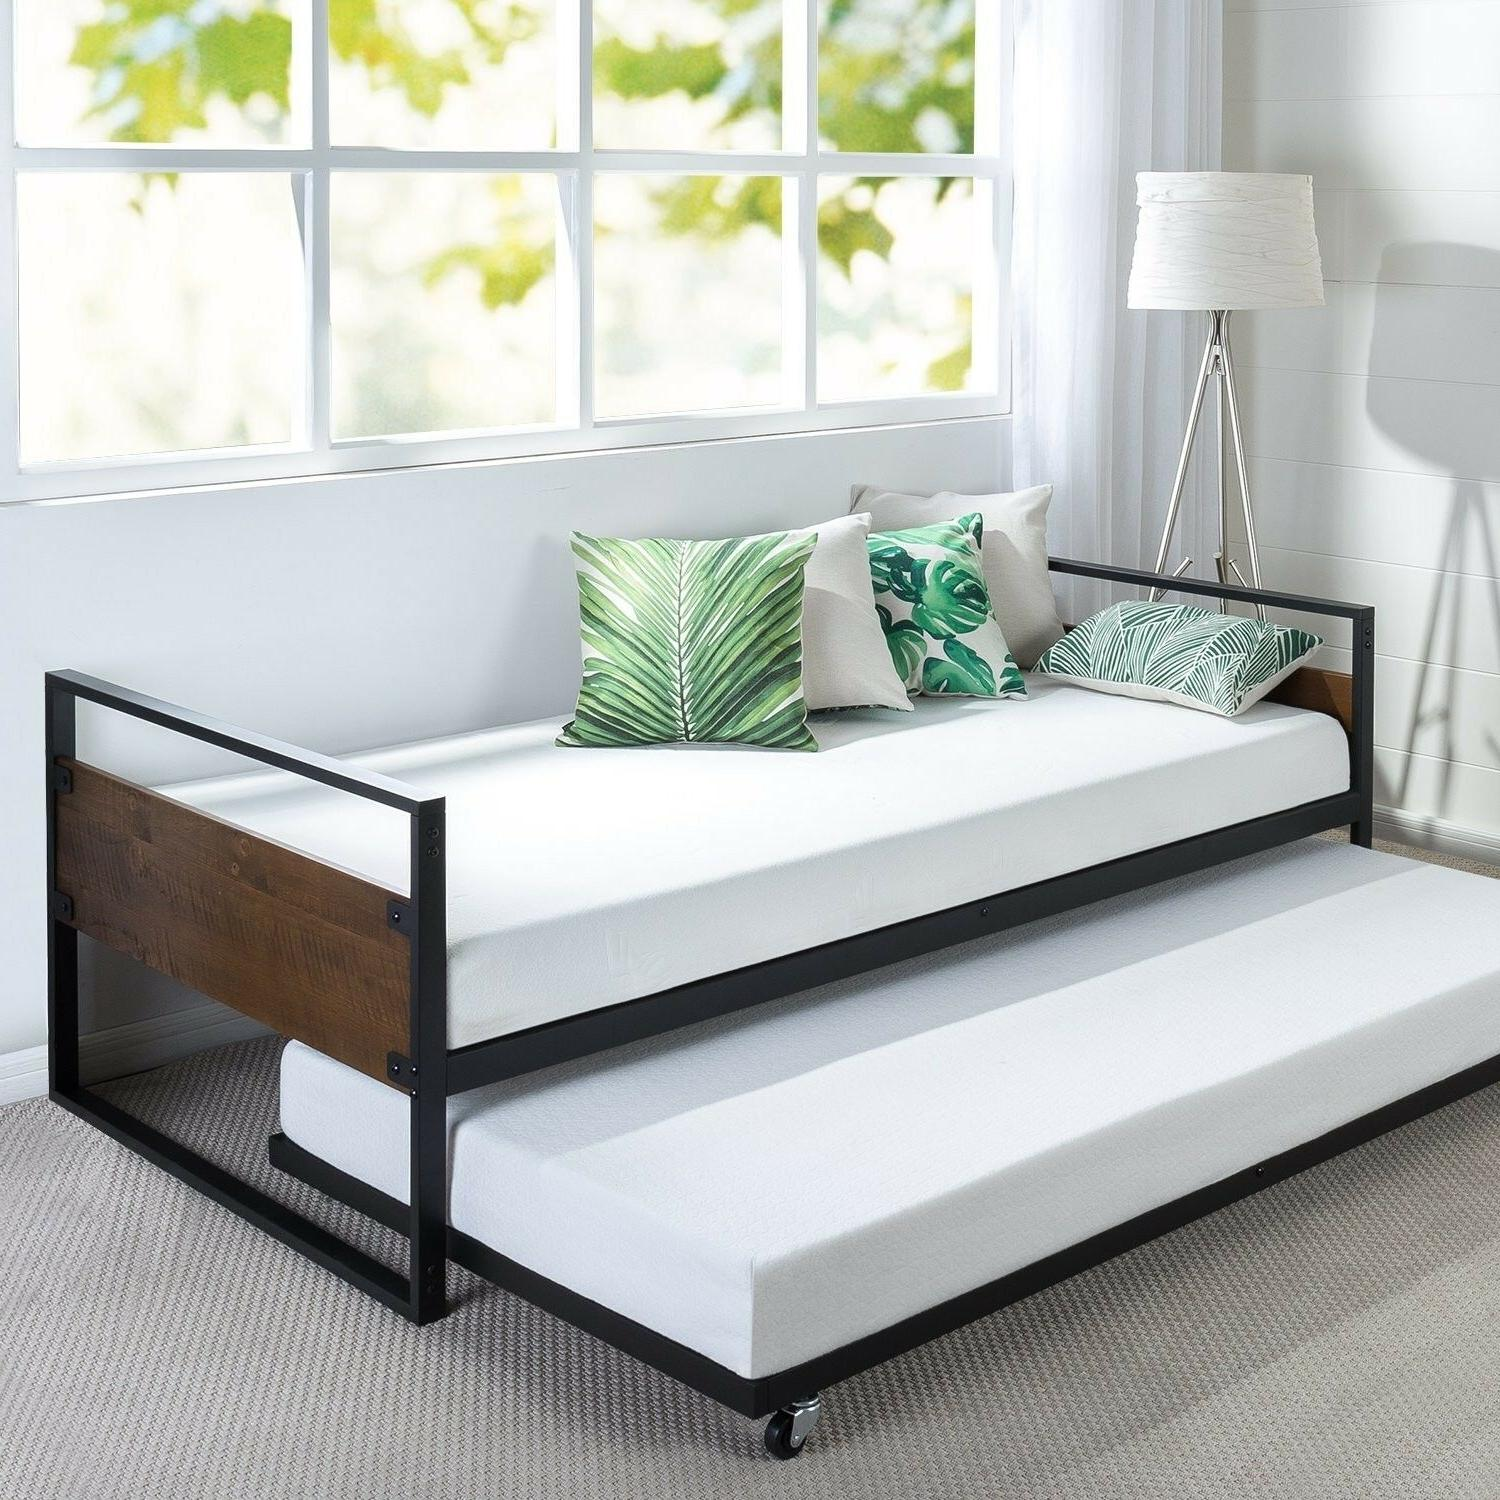 Stylish Functional Twin Daybed and Frame Set Premium Steel